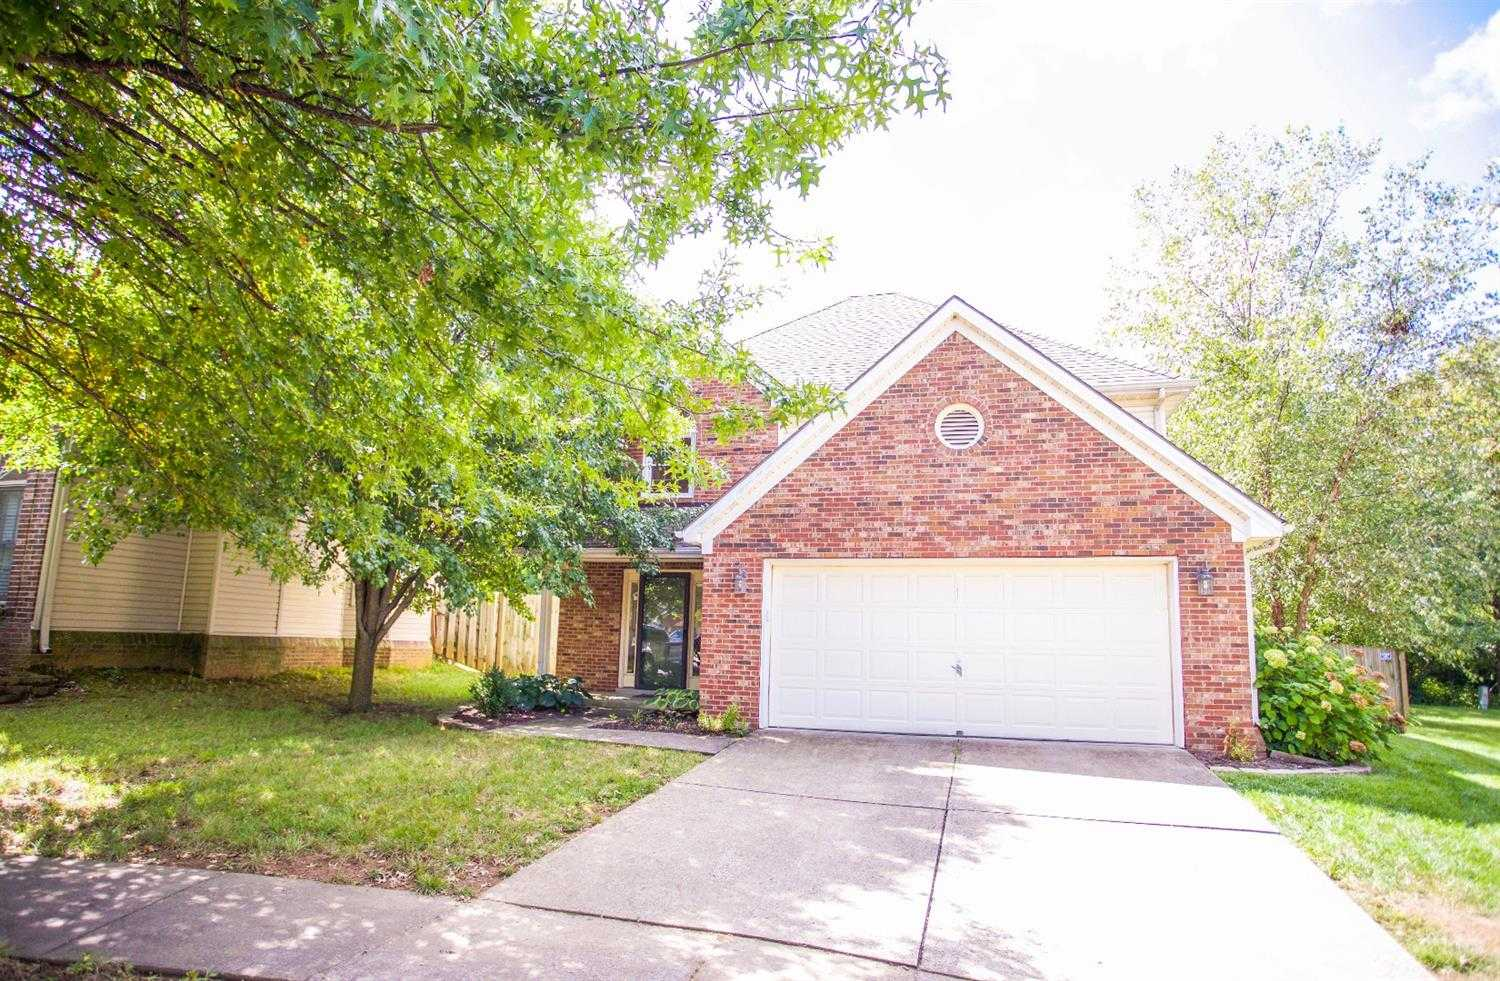 $227,500 - 3Br/3Ba -  for Sale in Willow Bend, Lexington